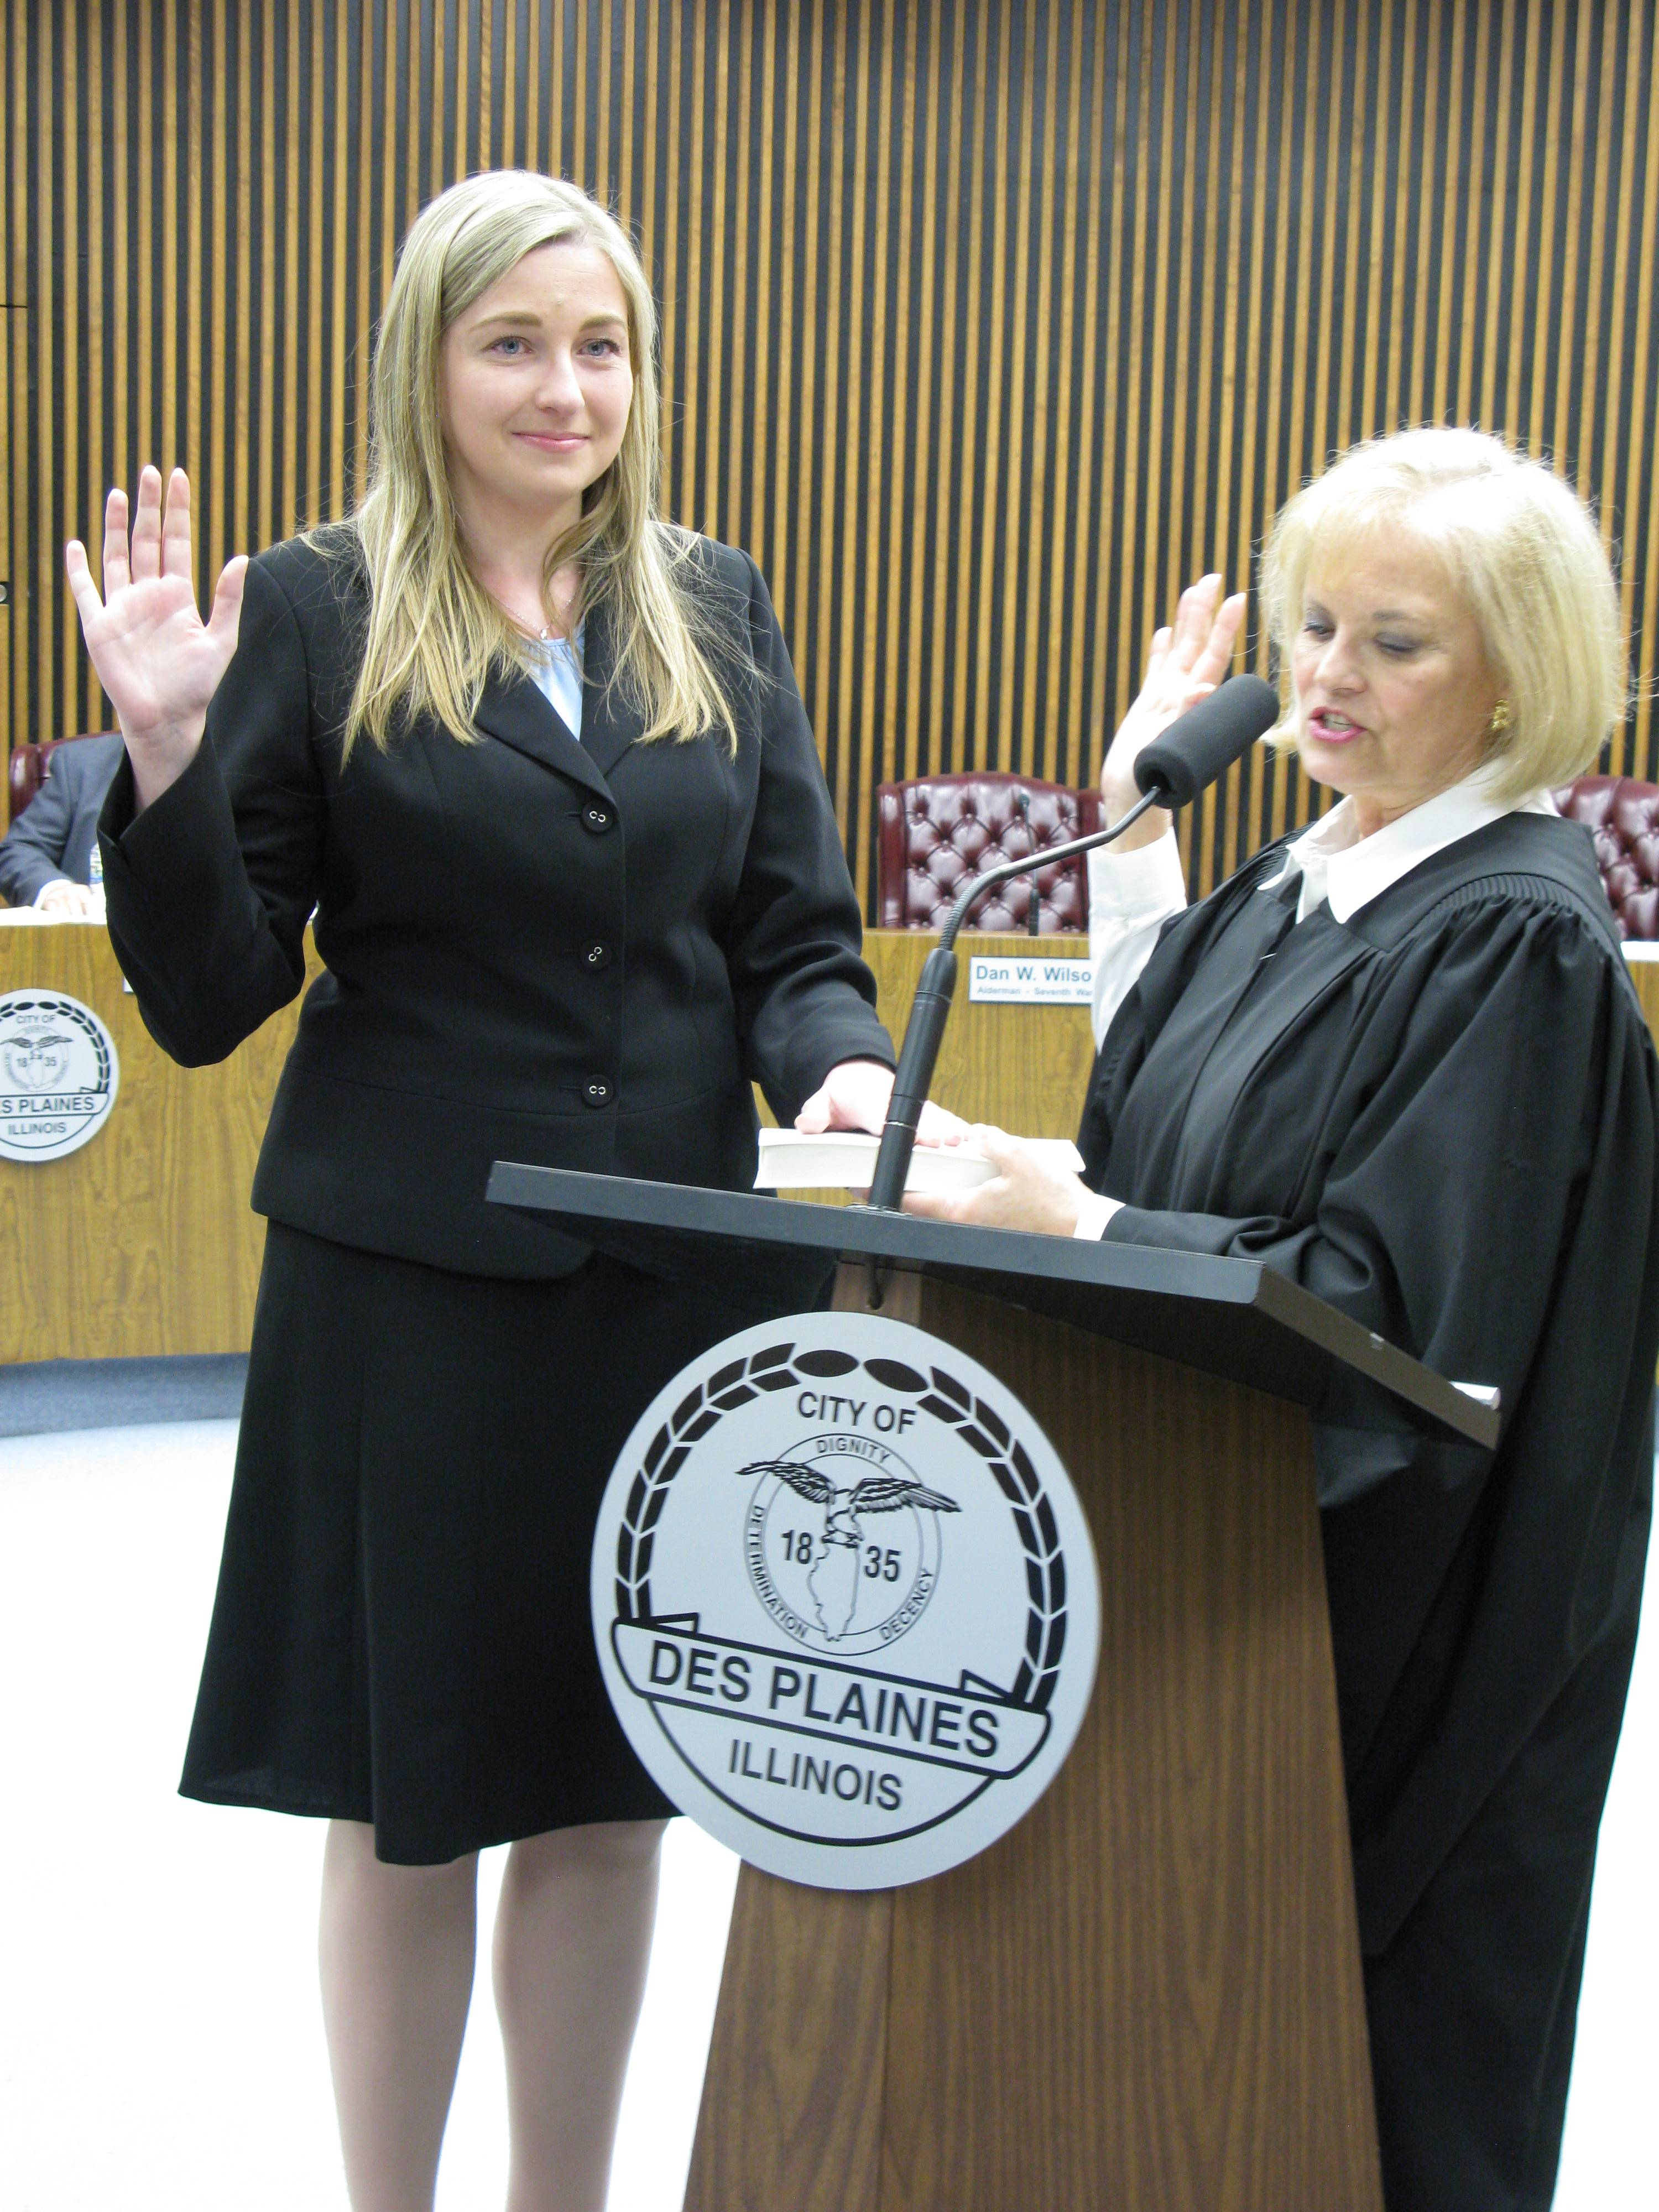 Joanna Sojka was sworn in as Des Plaines' 7th Ward alderman in May 2013 by Appellate Court Judge Aurelia Pucinski.